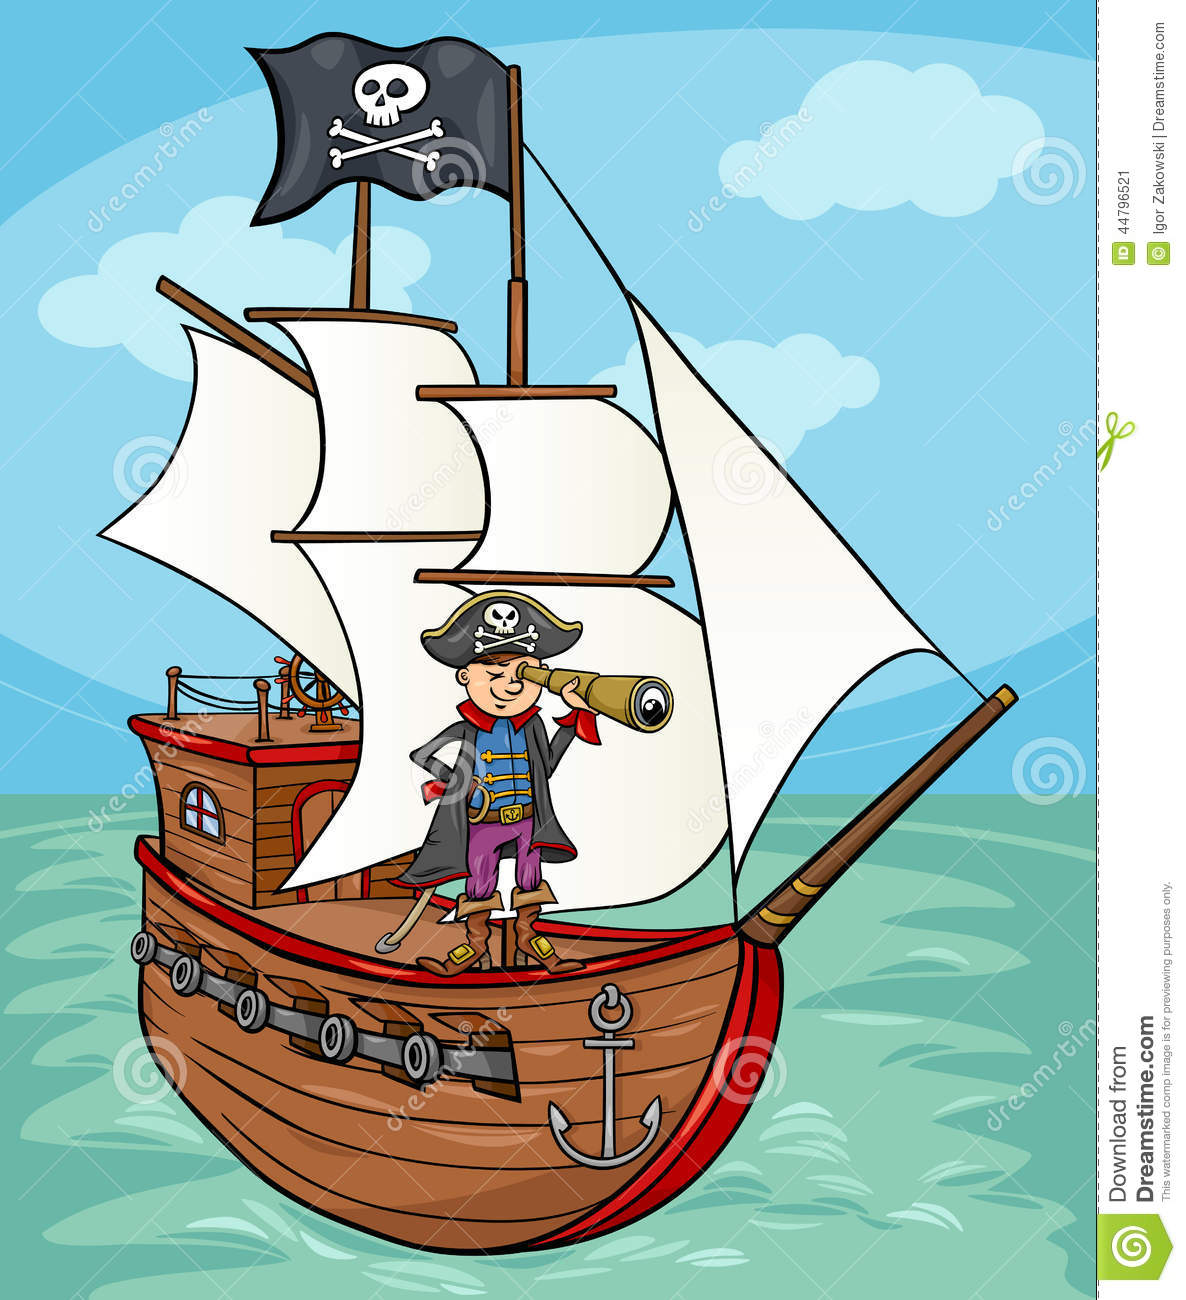 Pirate Ship Stock Images - Image: 31290084